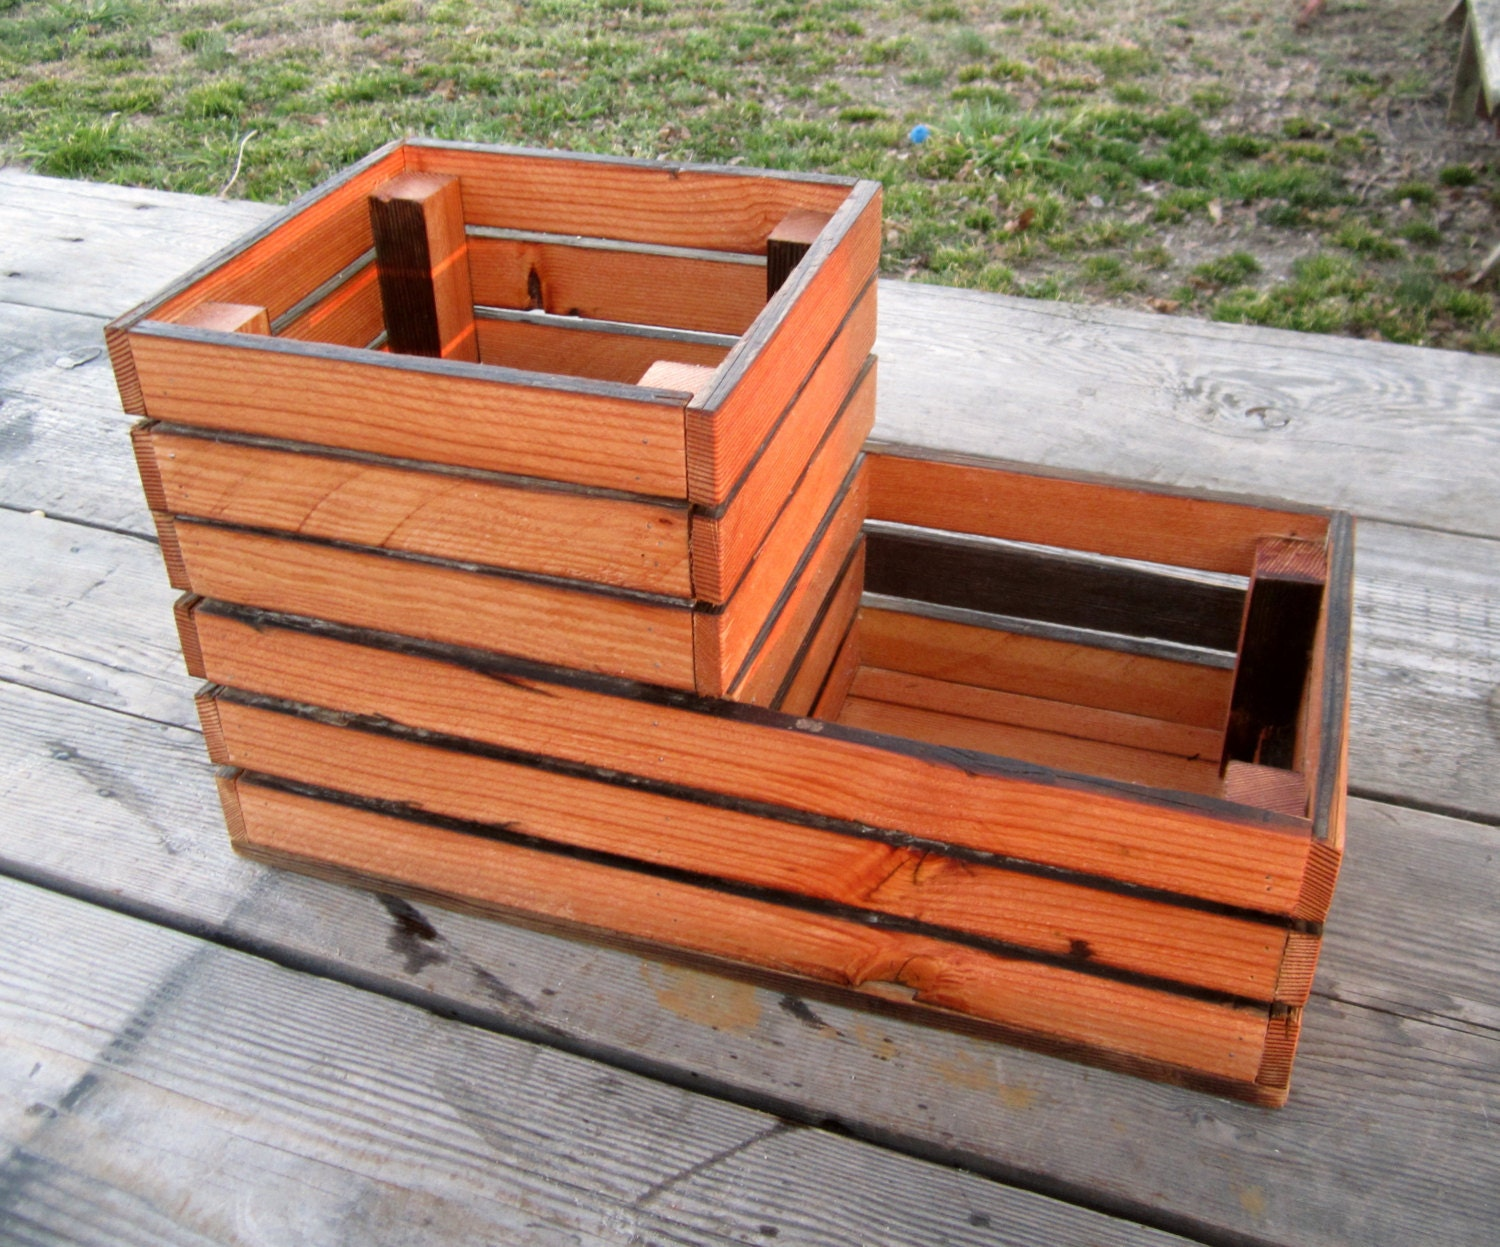 reclaimed wood patio planter wooden crate style box home. Black Bedroom Furniture Sets. Home Design Ideas